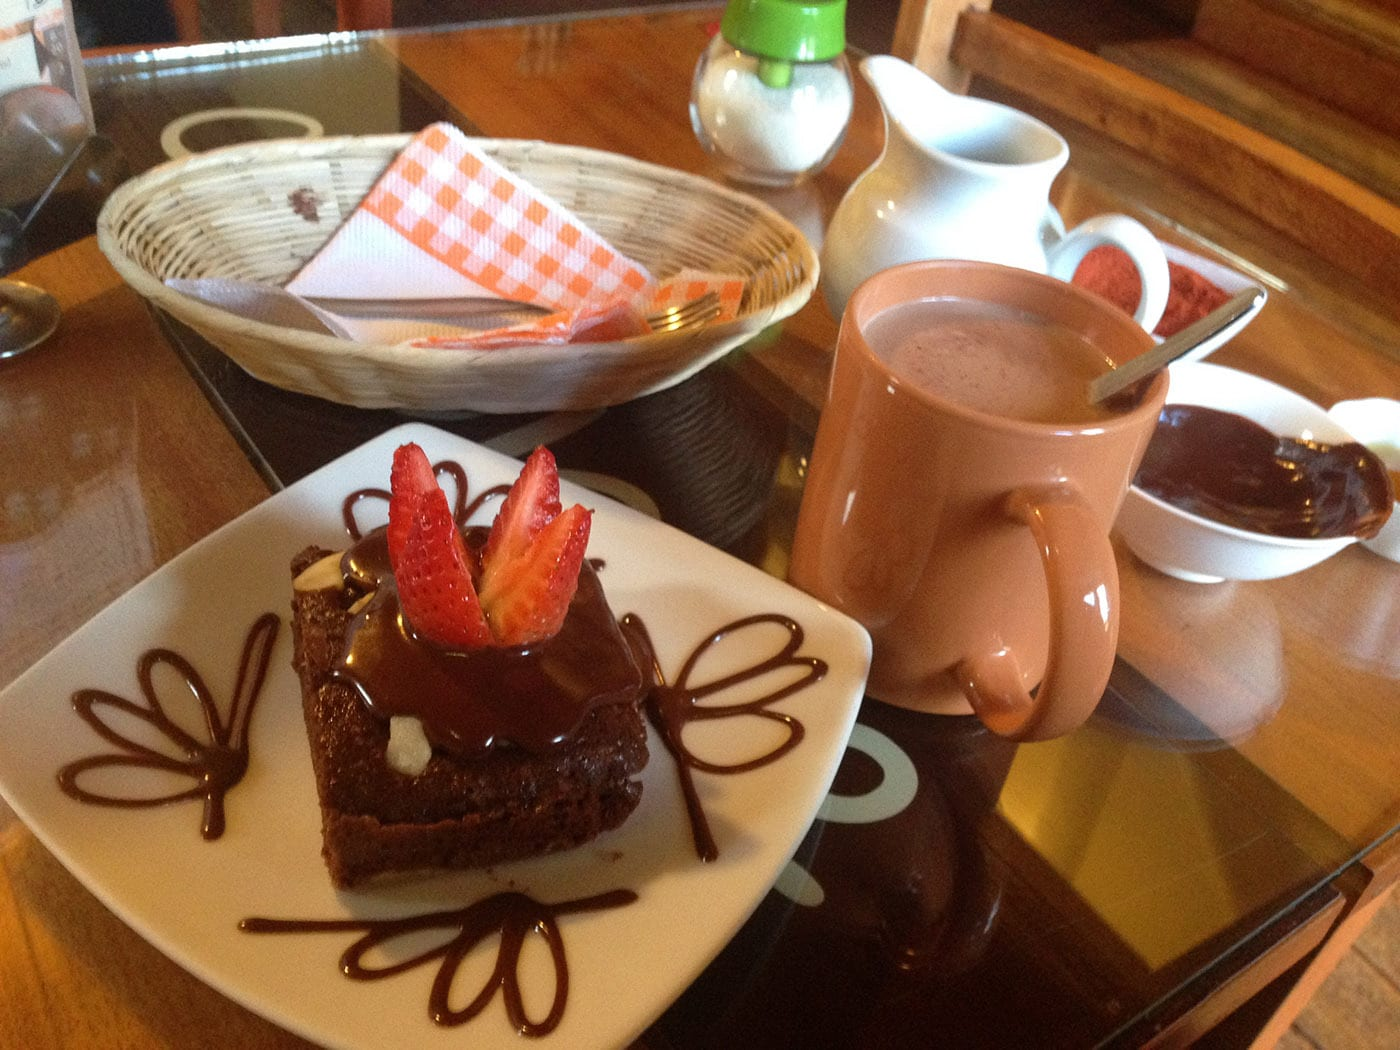 Brownie and hot chocolate at the chocolate museum in Cusco, Peru